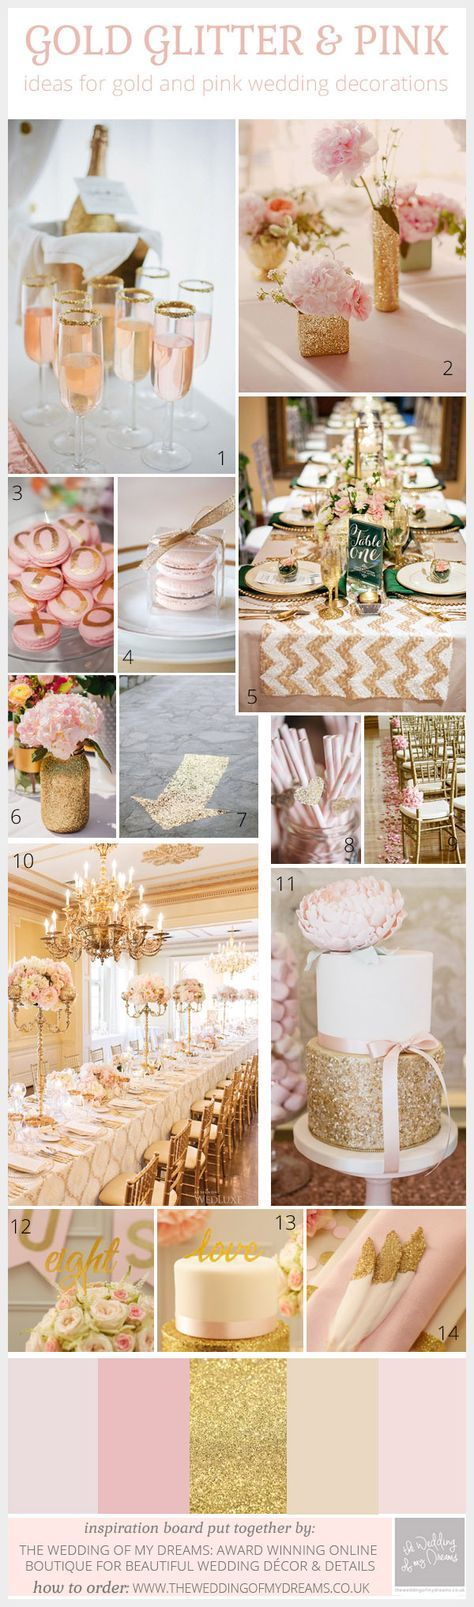 Pink And Gold Glitter Wedding Inspiration Board and Decoration Ideas. Gorgeous gold glitter and lustre papers available from ImagineDIY. DIY wedding stationery supplies